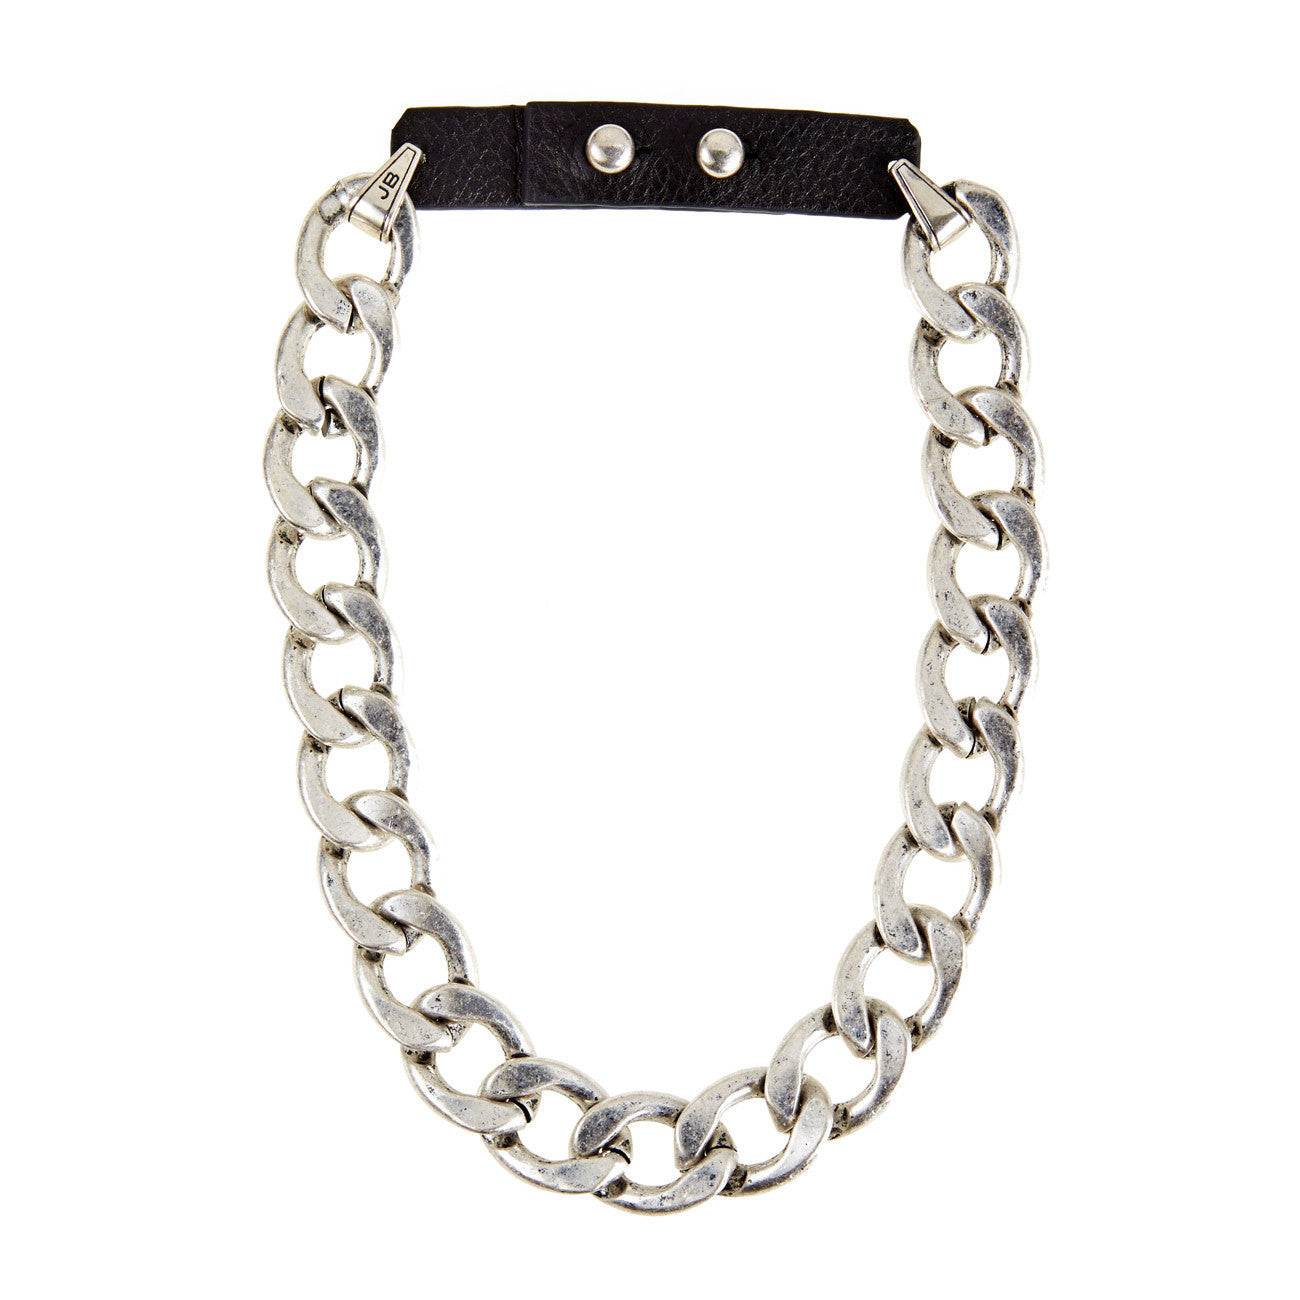 RiRi Collar in Silver by Jenny Bird